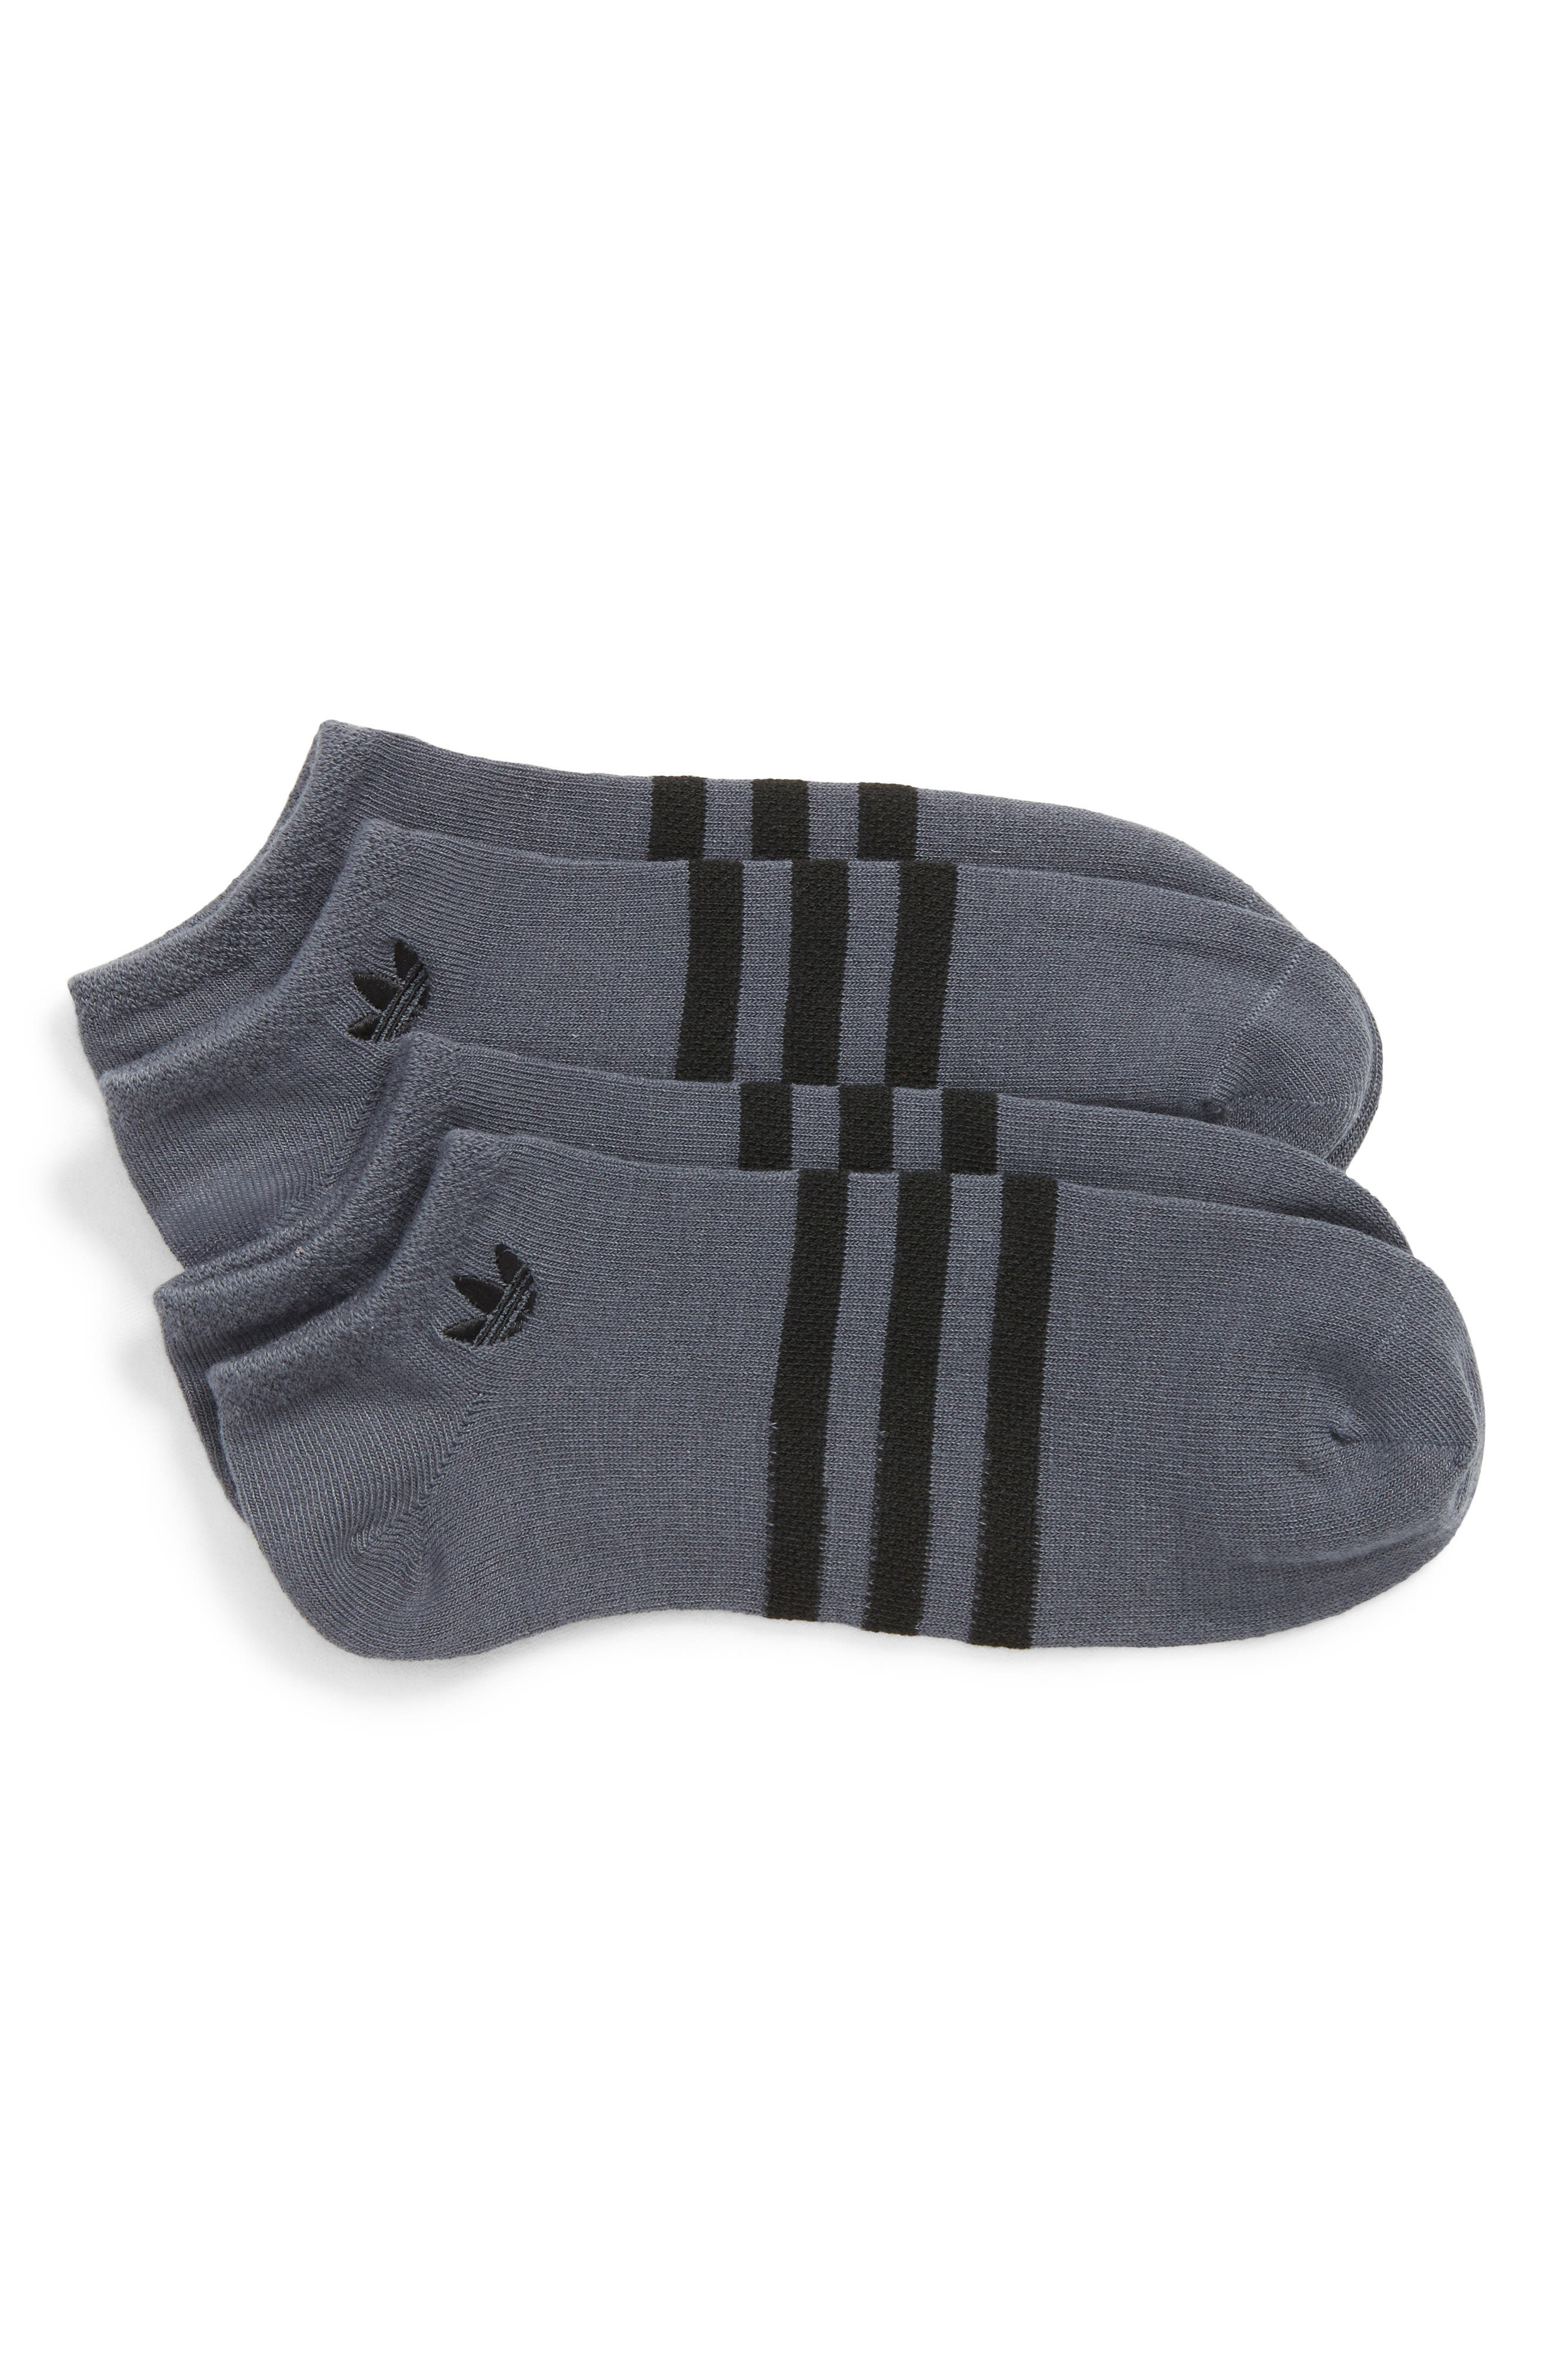 Main Image - adidas Originals 2-Pack No-Show Socks